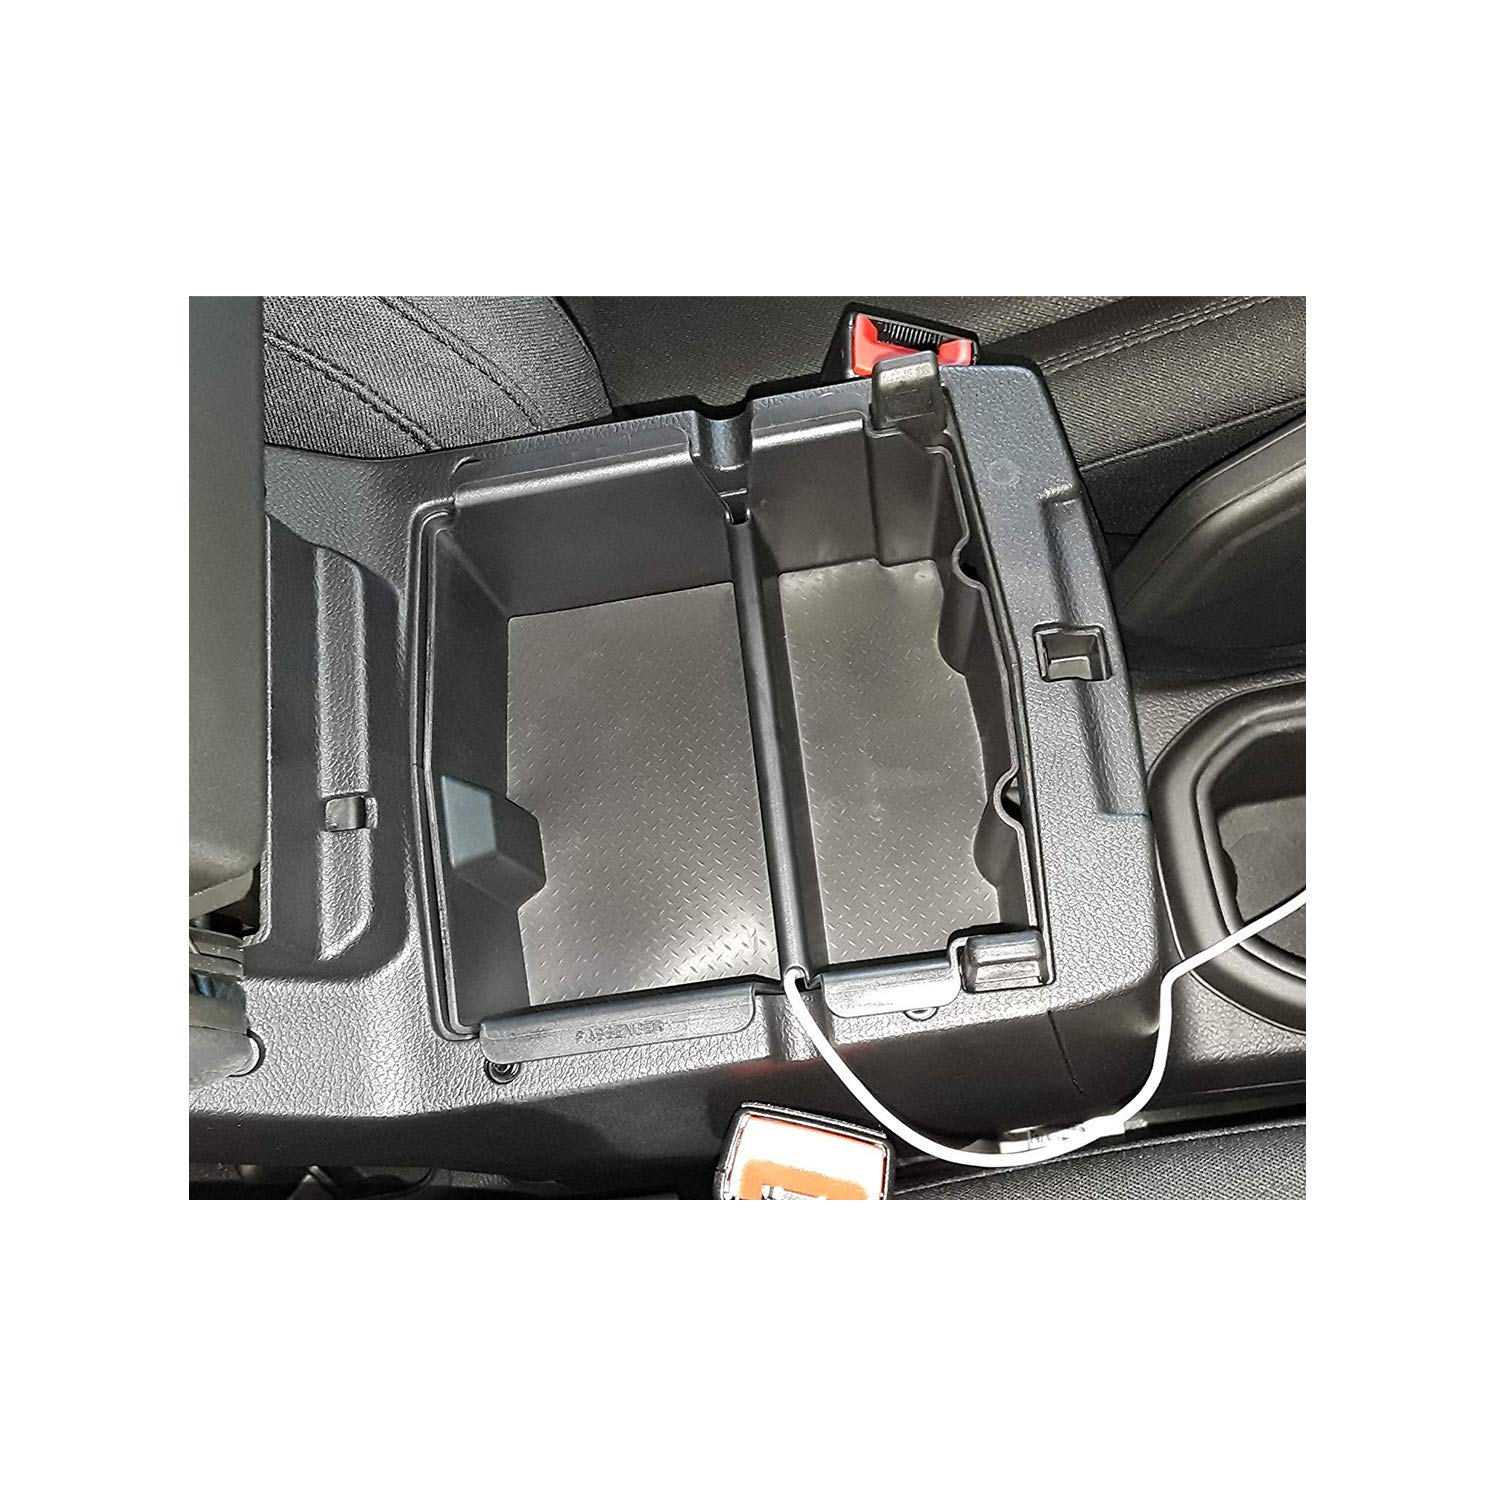 LFOTPP 2018 Jeep Gladiator Armrest Center Console Organizer Tray Accessories with Coin and Sunglass Holder,Secondary Storage Box Jeep Wrangler JL//JLU 2020